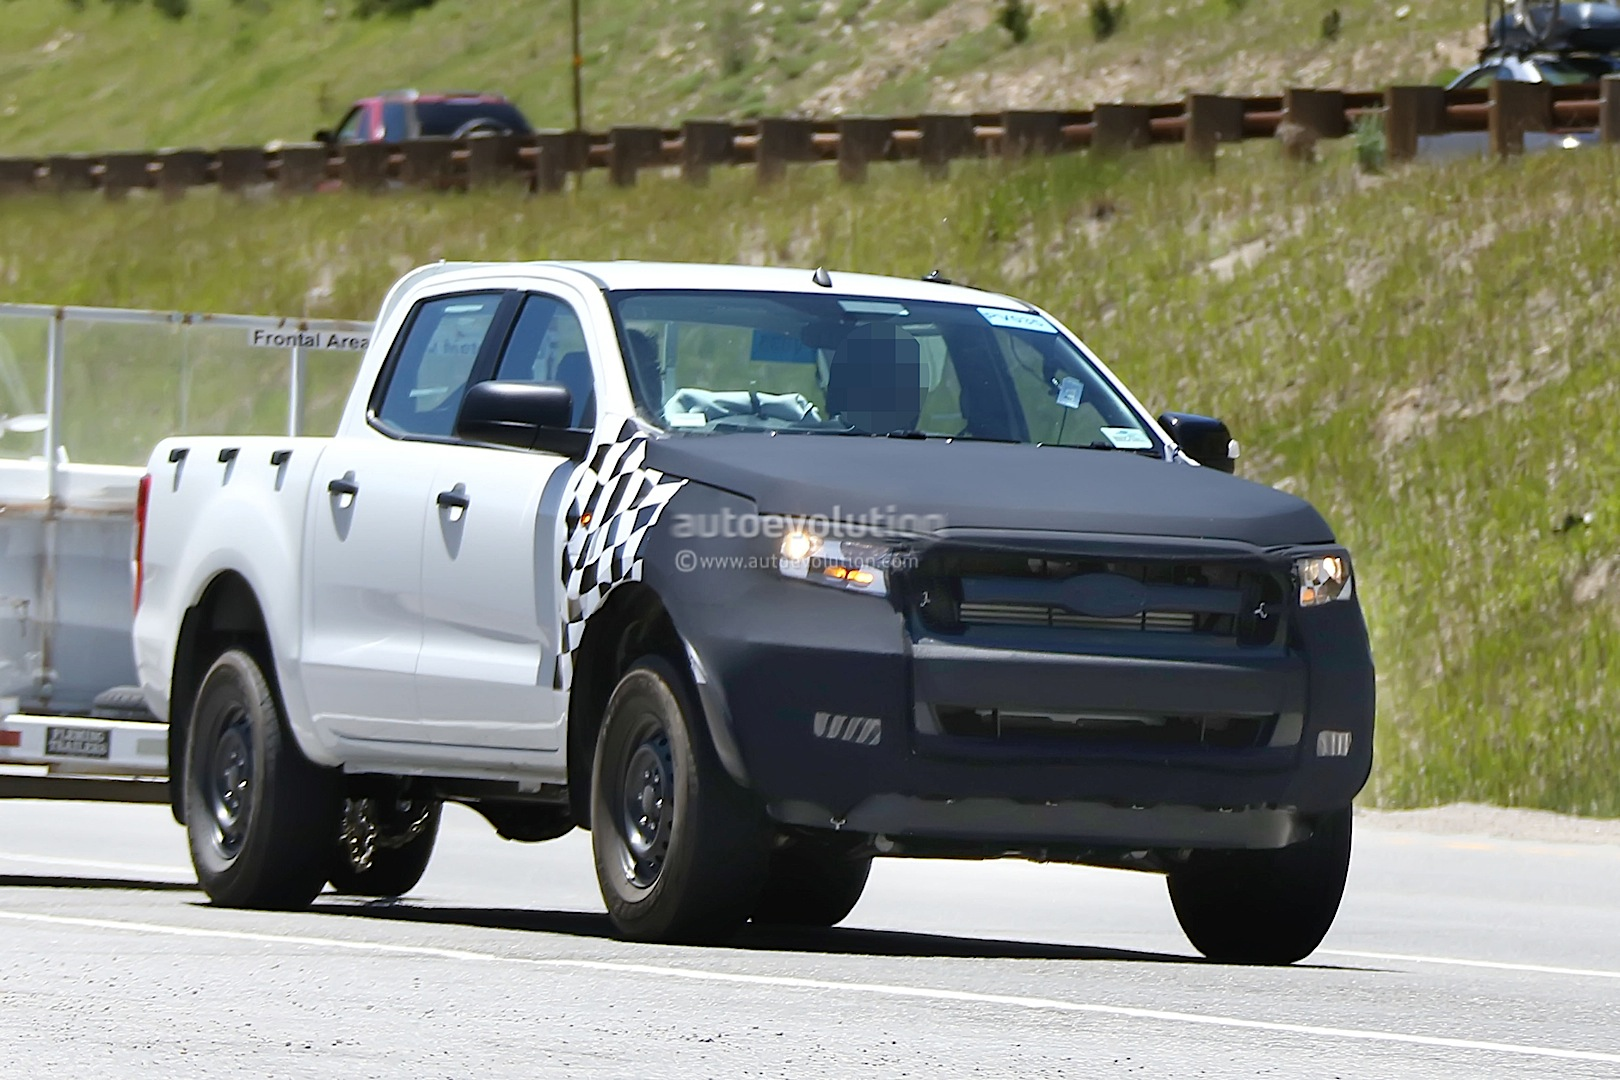 2015 ford ranger towing a trailer 2015 ford ranger towing a trailer